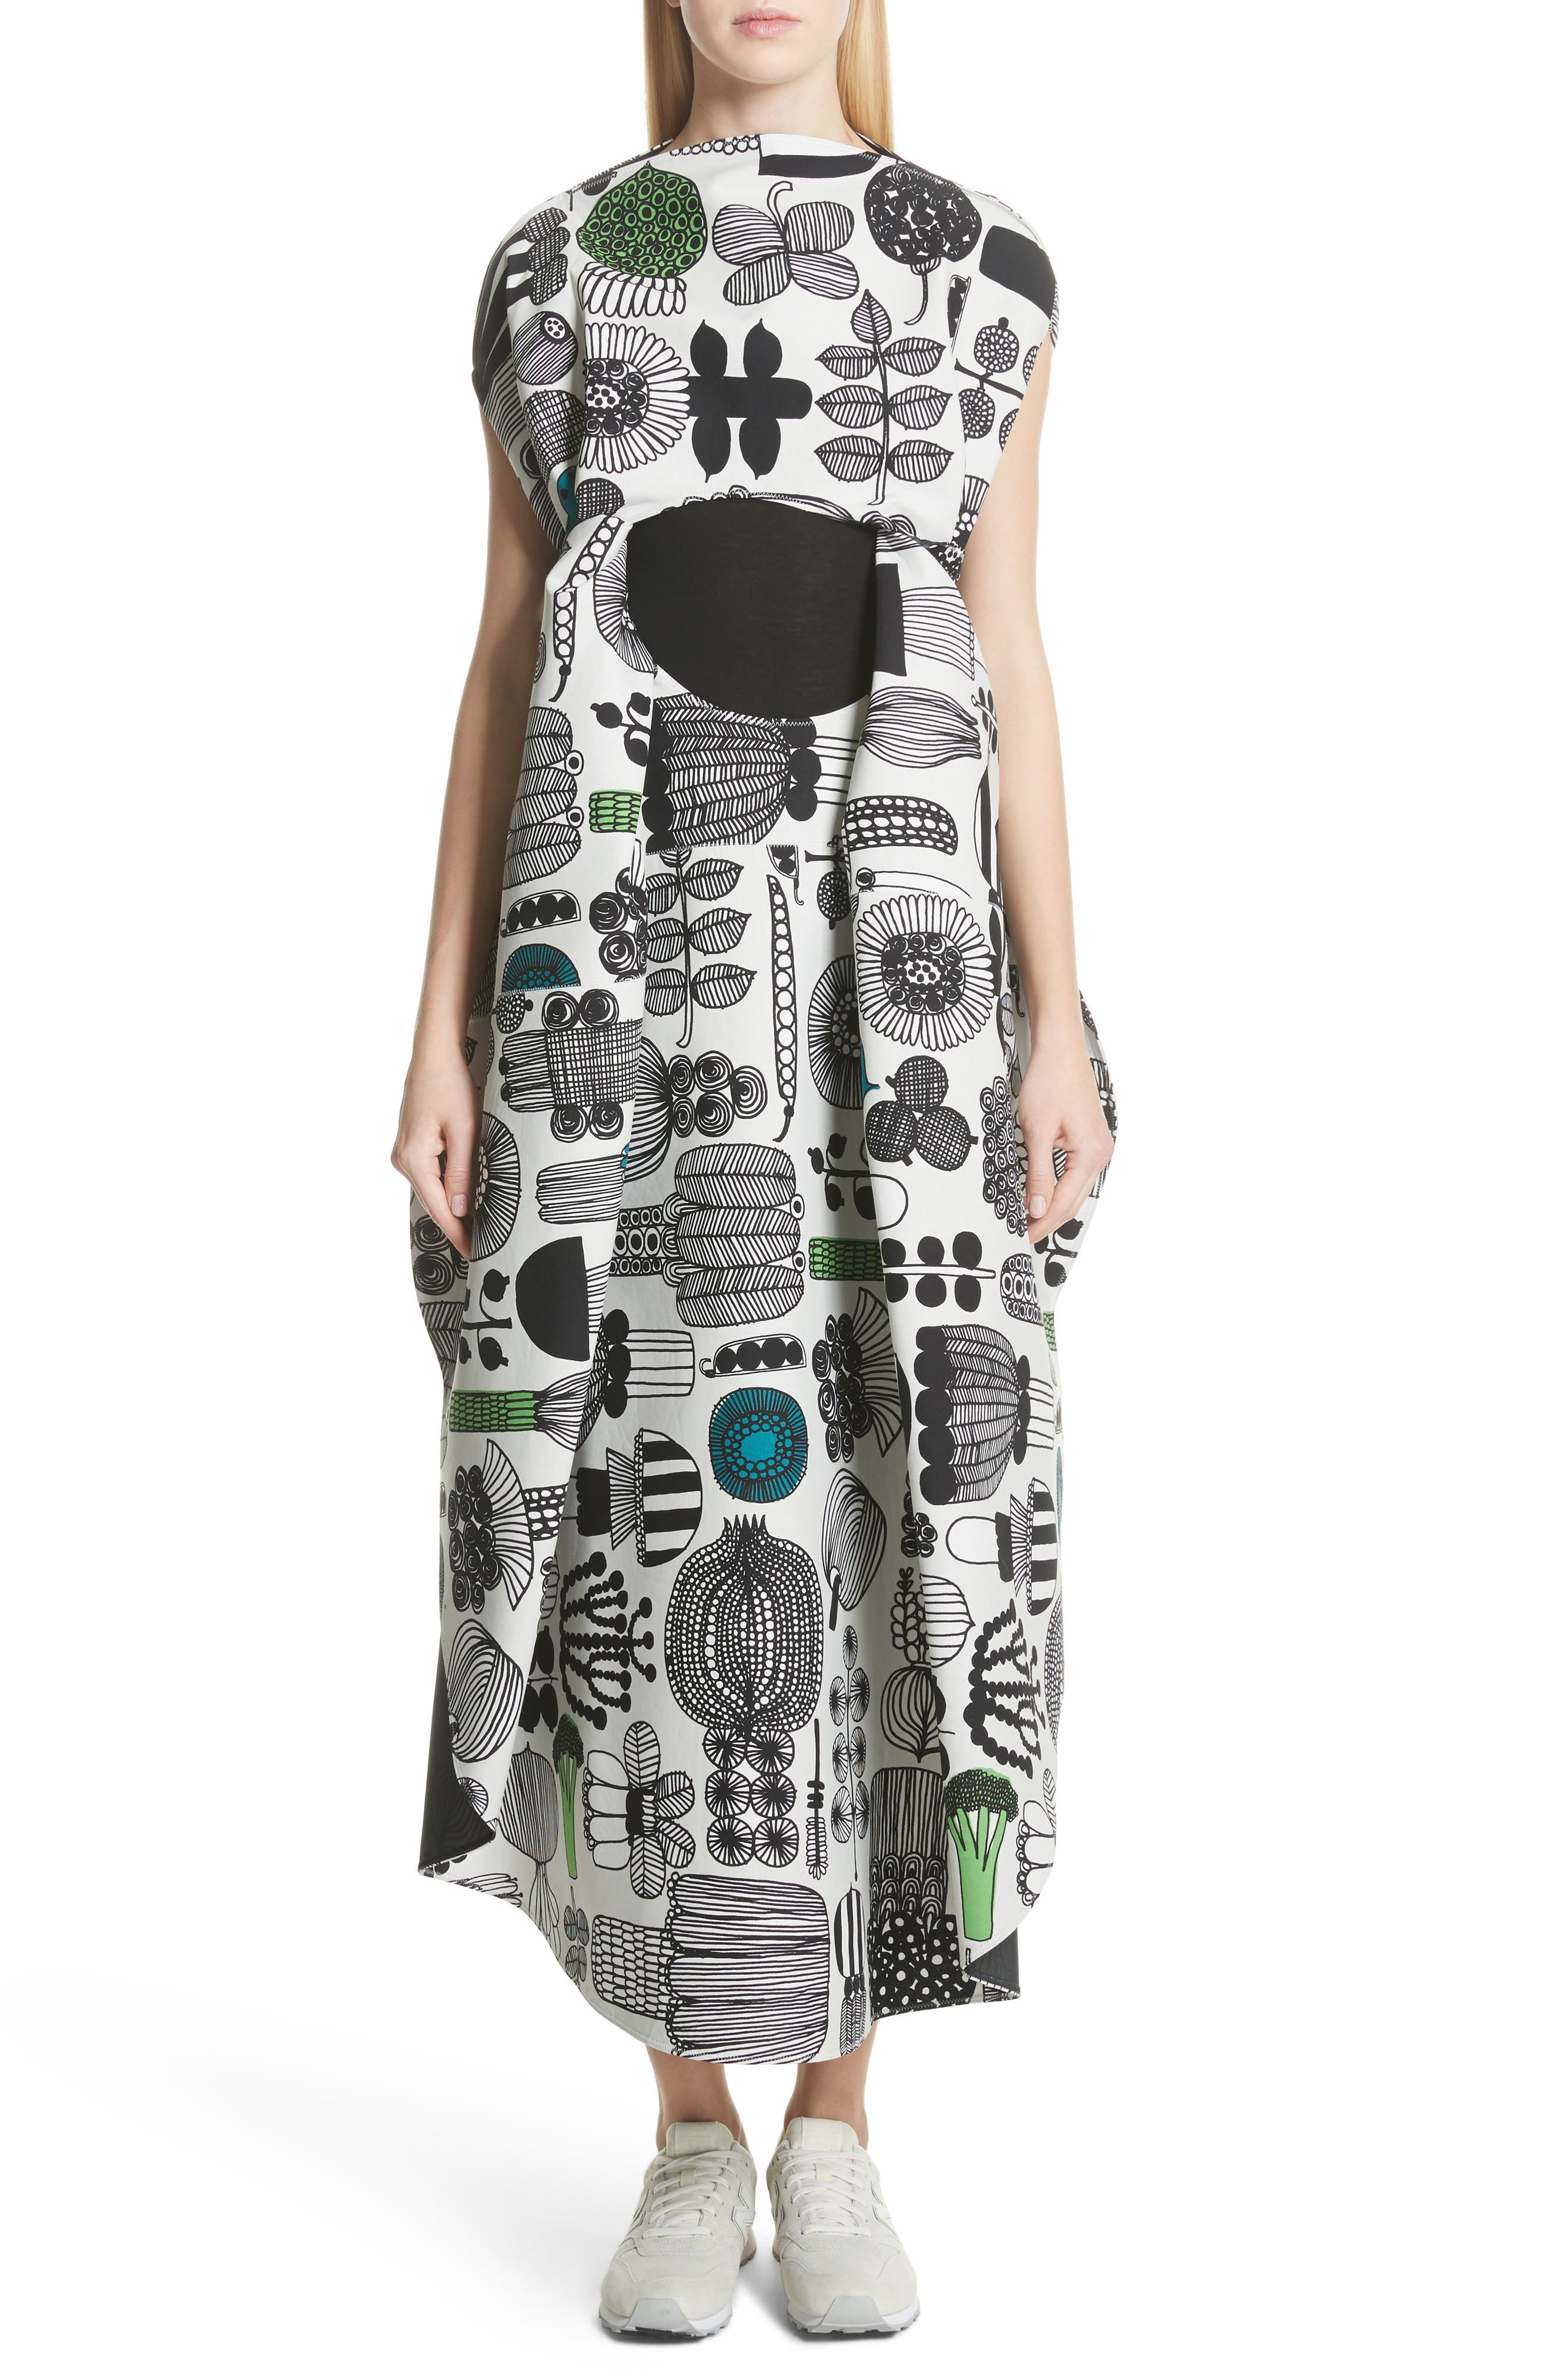 Vegetable Print Shift Dress,                             Main thumbnail 1, color,                             Gry/ Grn/ Blk